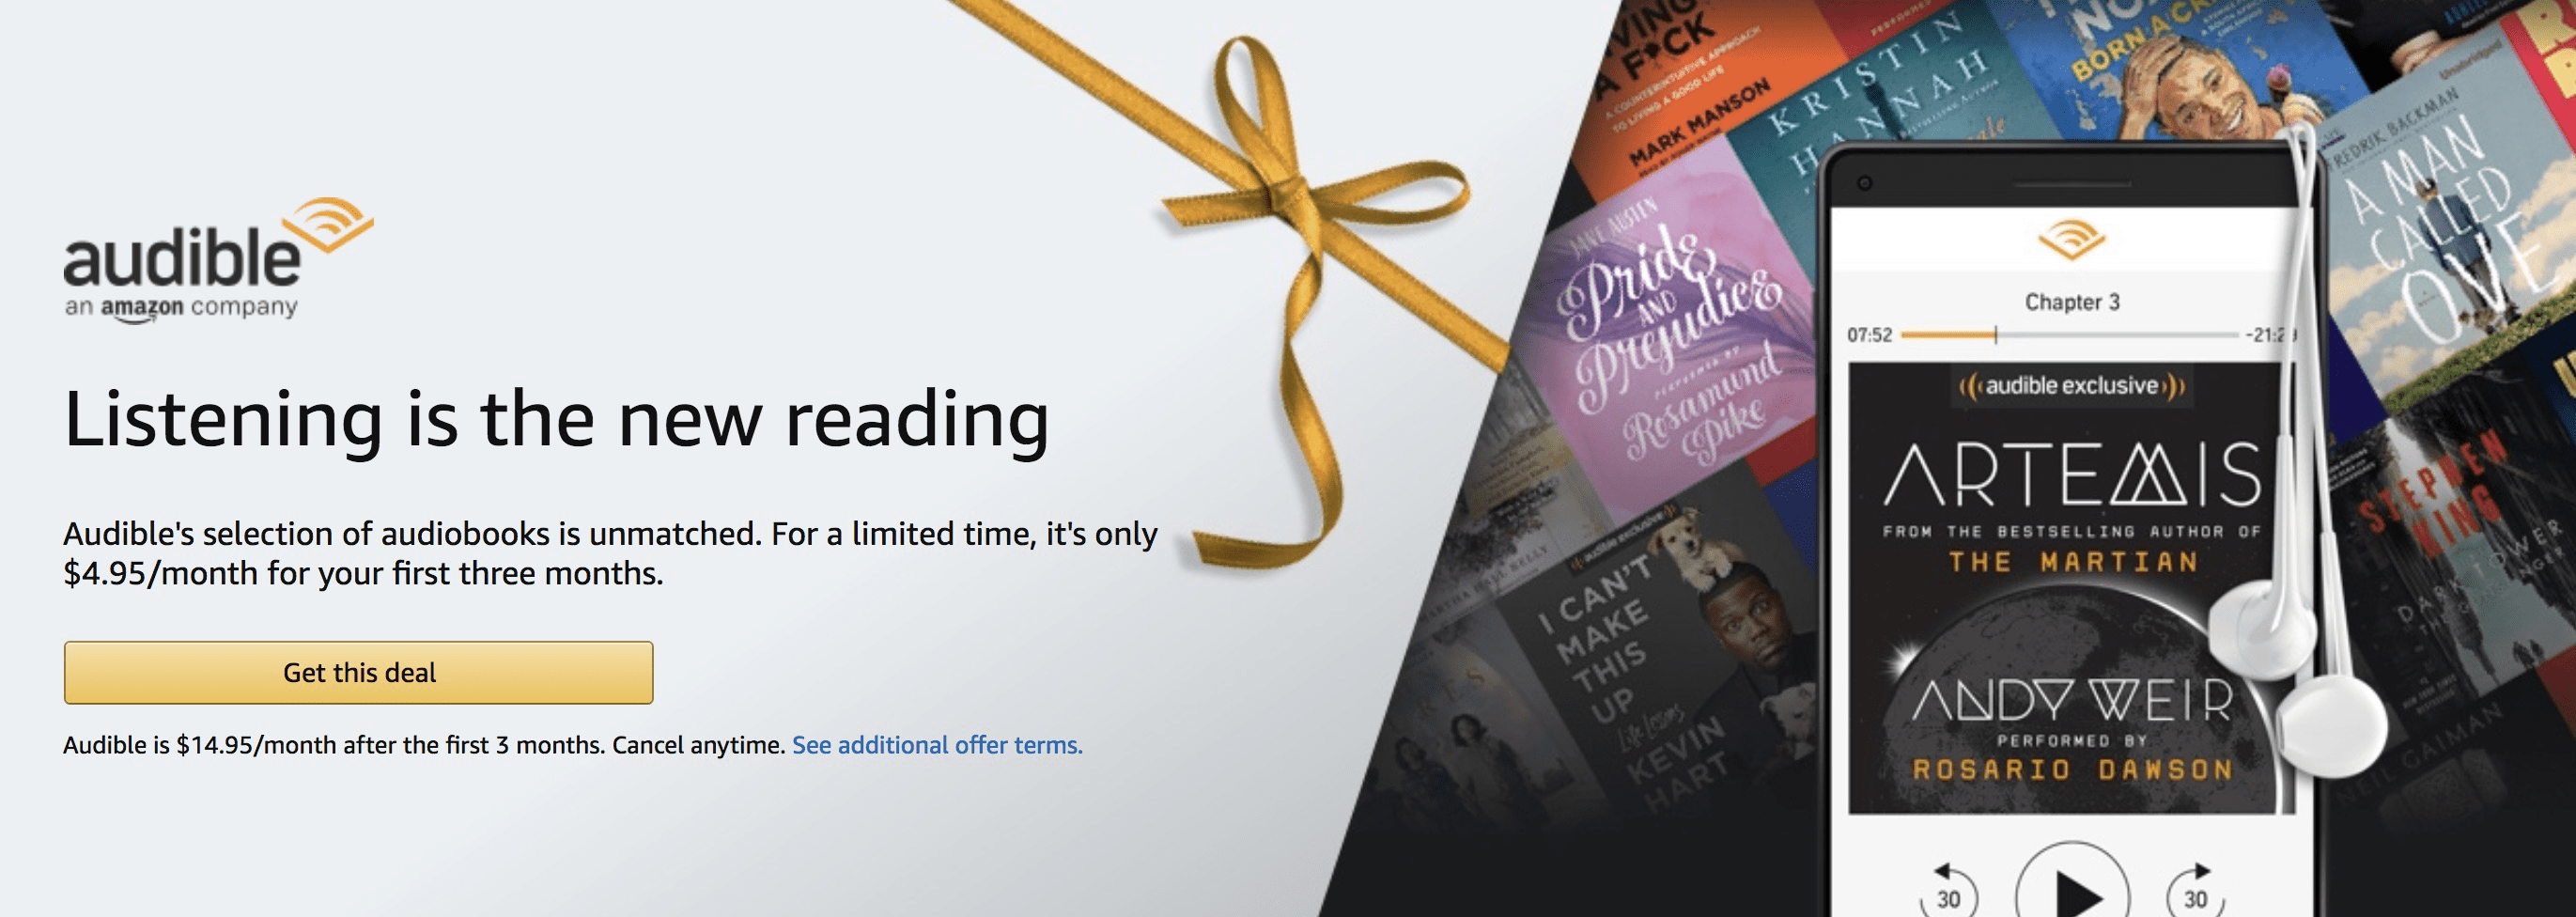 Amazon Audible Cyber Monday Deal: $4.95/Month for 3 Months!